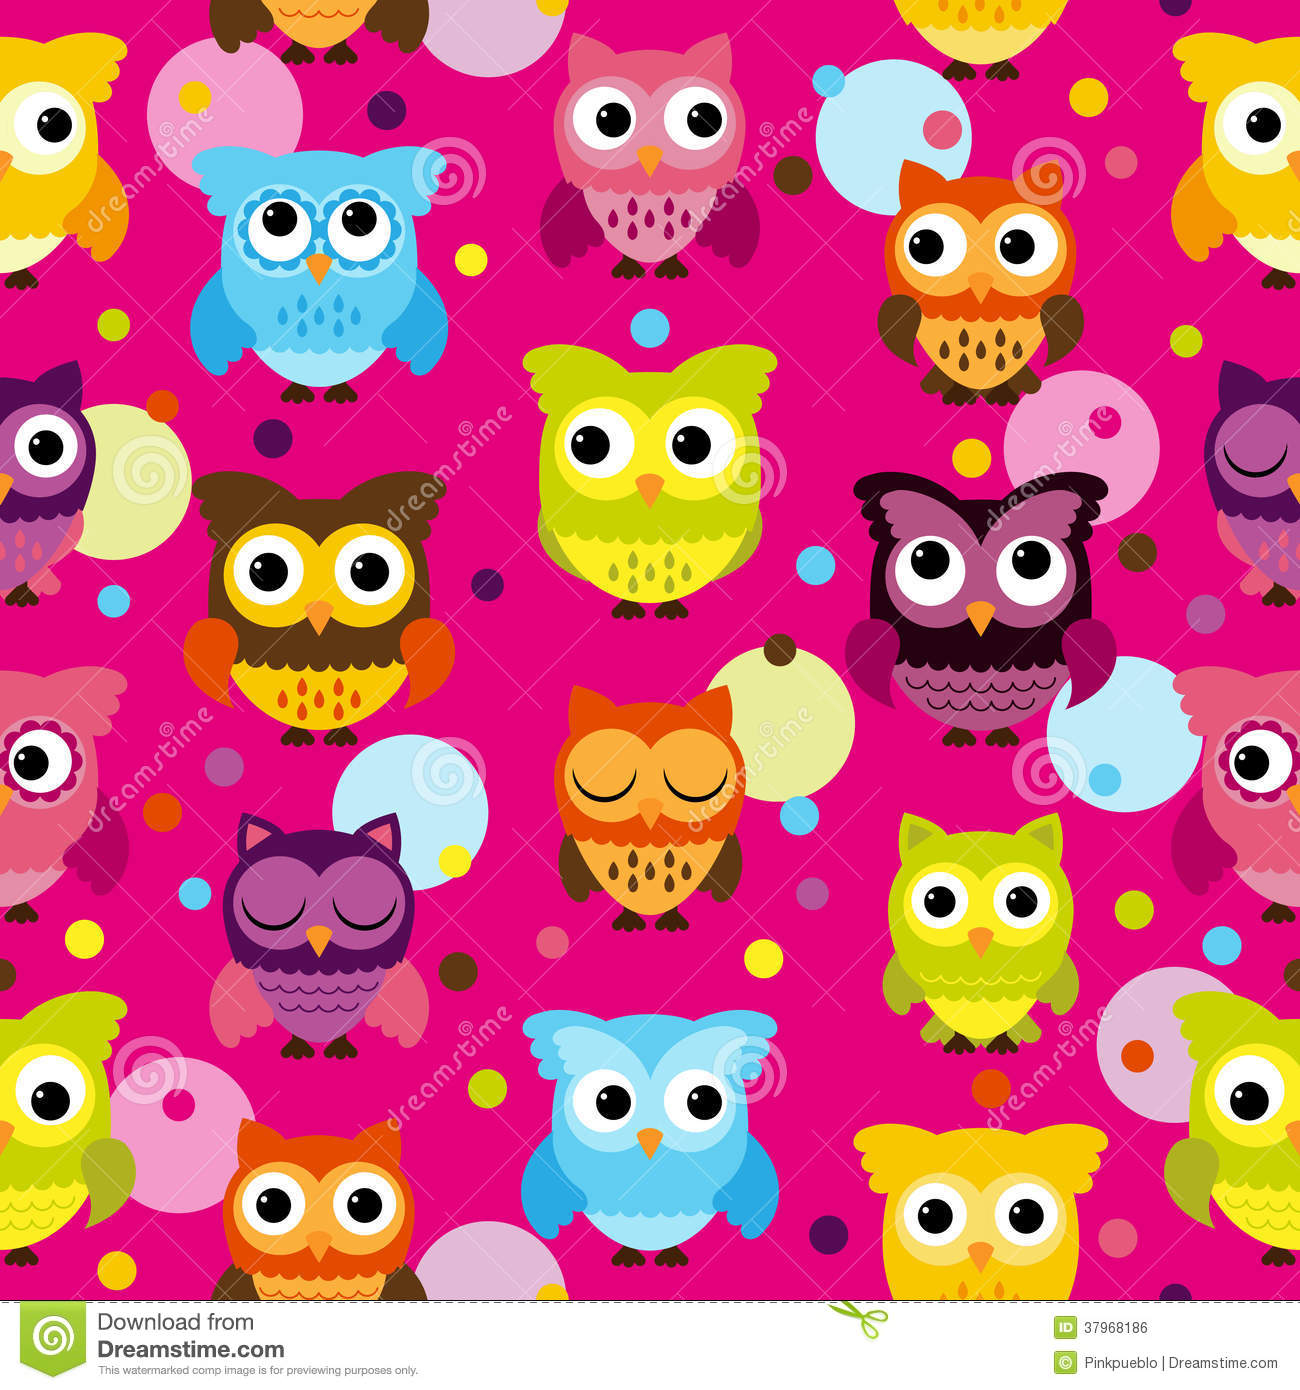 Bright Pink Seamless and Tileable Vector Owl Background Pattern